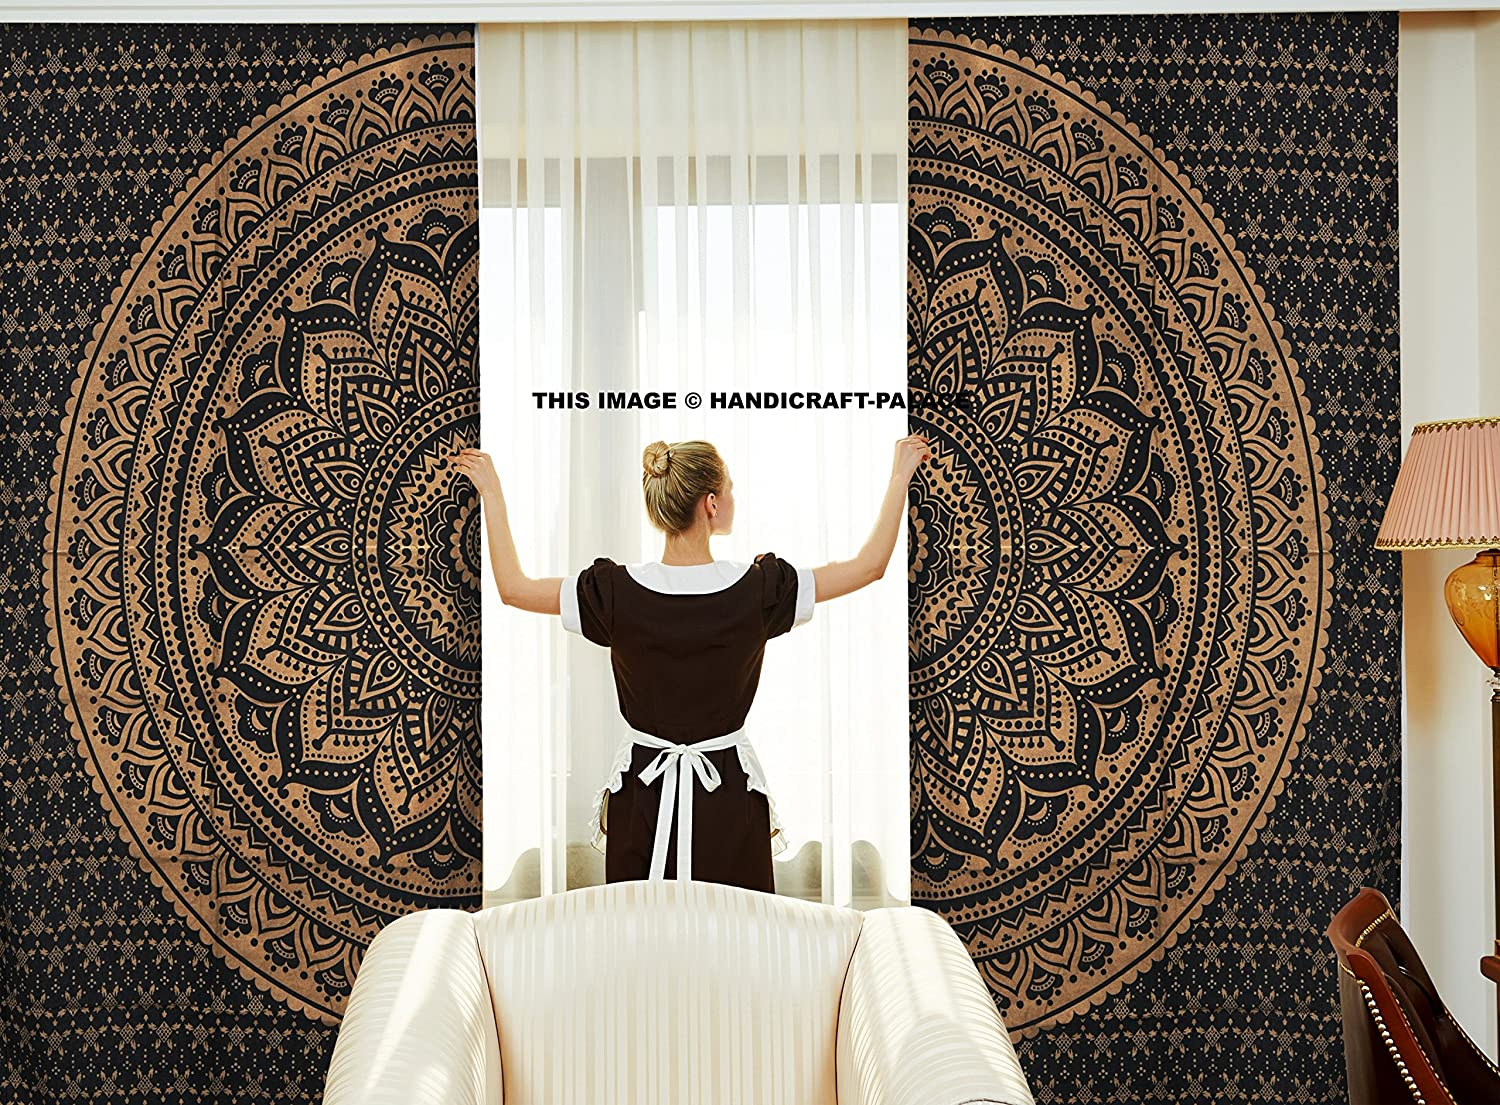 Curtains Ethnic Black Gold Ombre Mandala Decor by Handicraftspalace, Mandala Tapestry Meditation Design Psychedelic Round, Window Treatments, Living Kids Girls Room 2 Panels Set, 82 X 82 Inch Handicraft-Palace MC-7